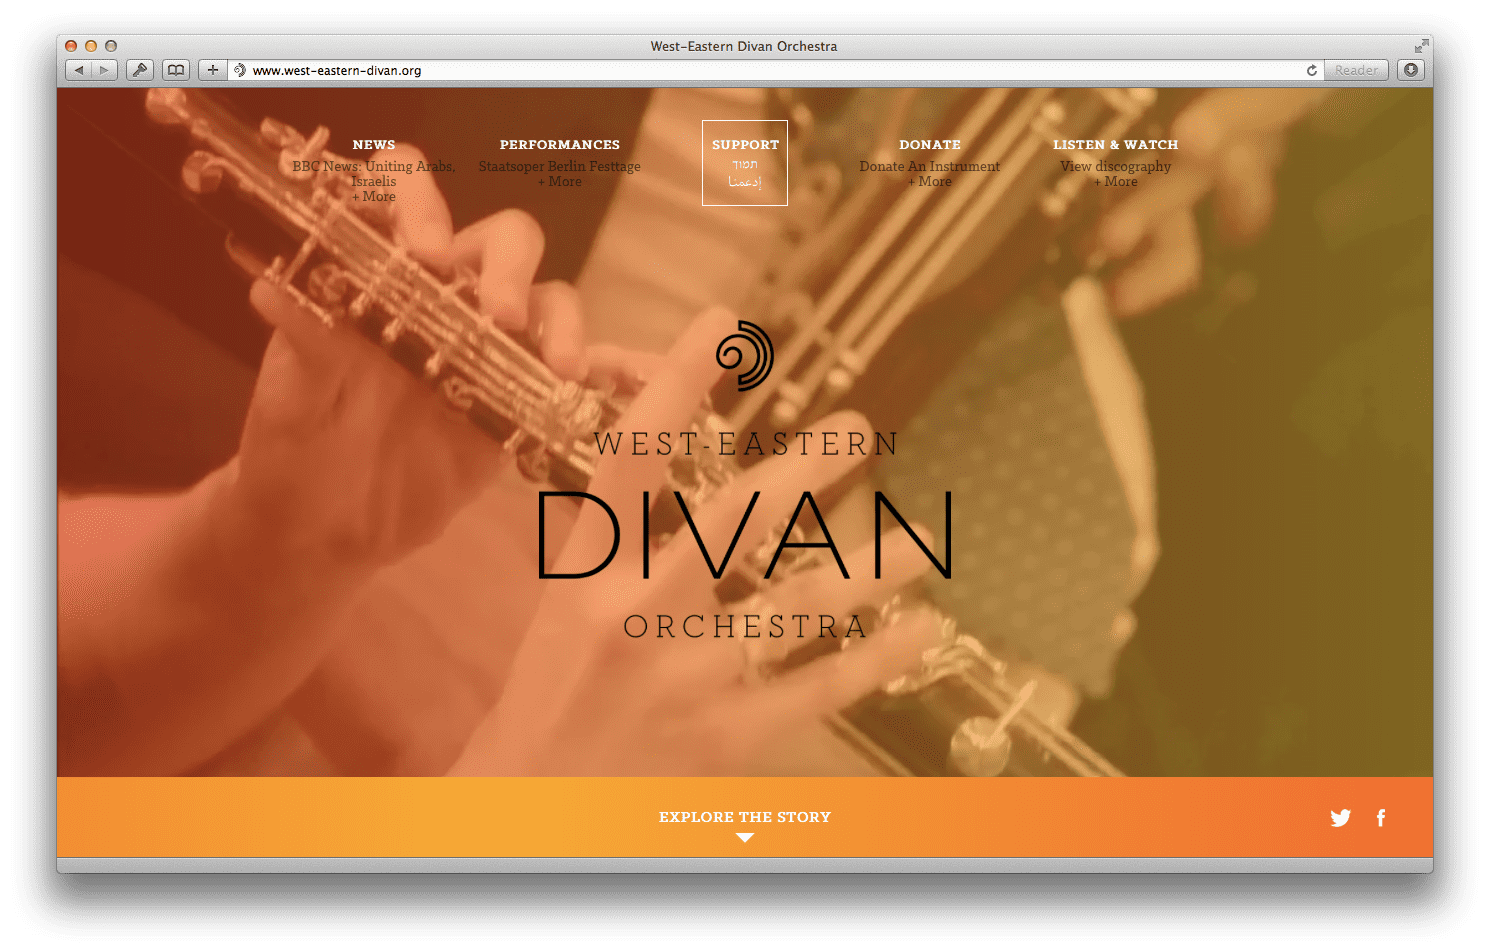 West-Eastern Divan Orchestra Brand and Website